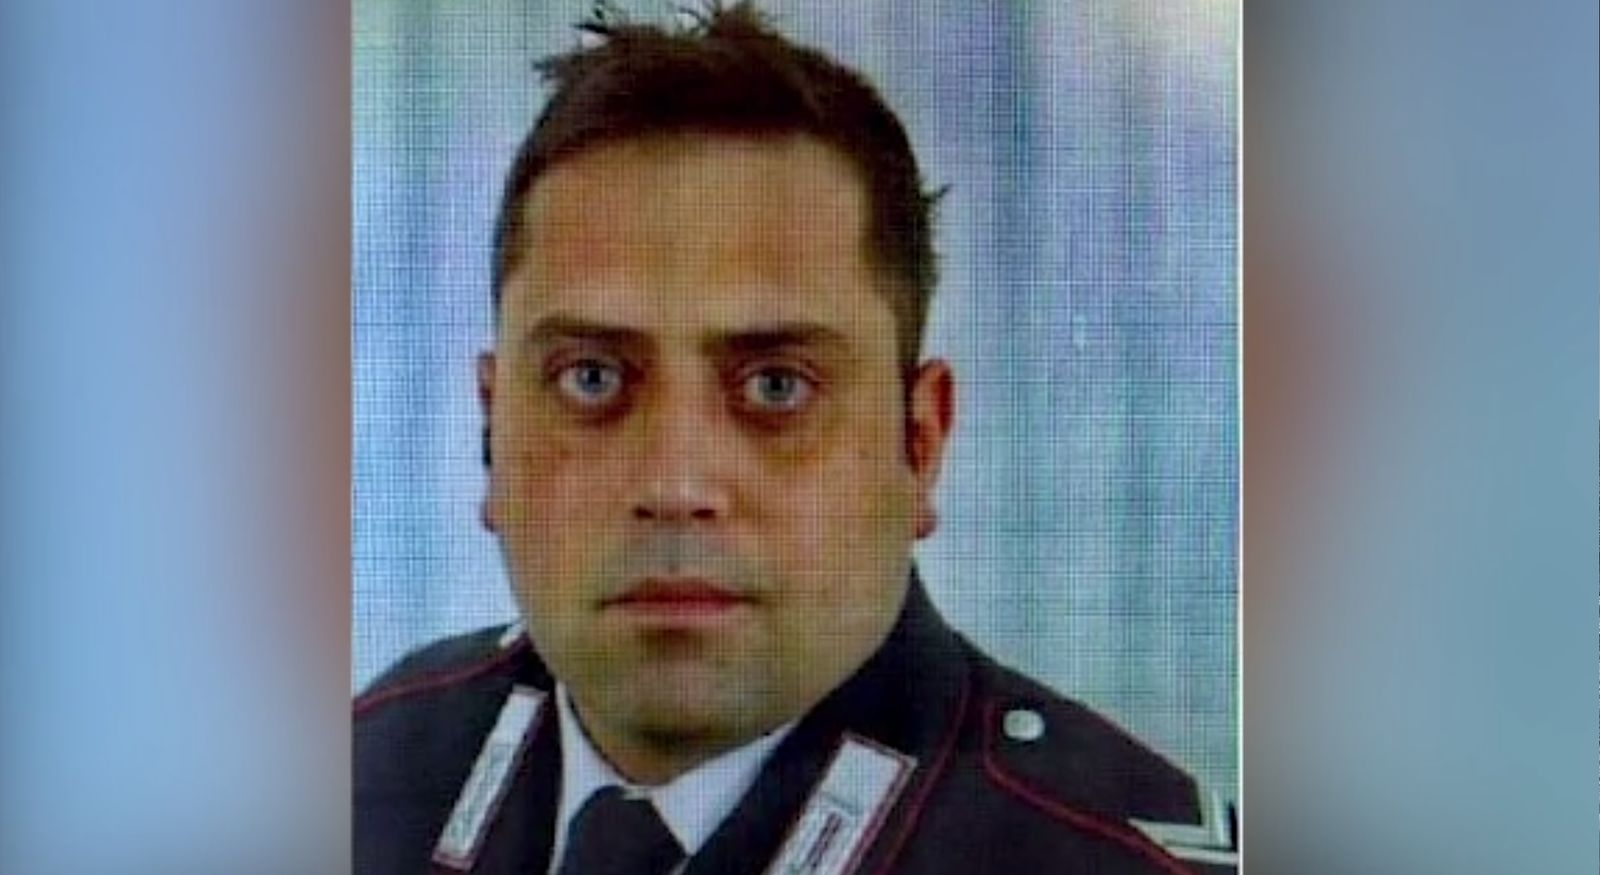 Photo of Carabinieri officer Mario Cerciello Rega, 35, who was killed Friday, July 26, 2019. Two young American tourists have been detained for alleged murder and attempted extortion. (Photo: CNN Newsource)